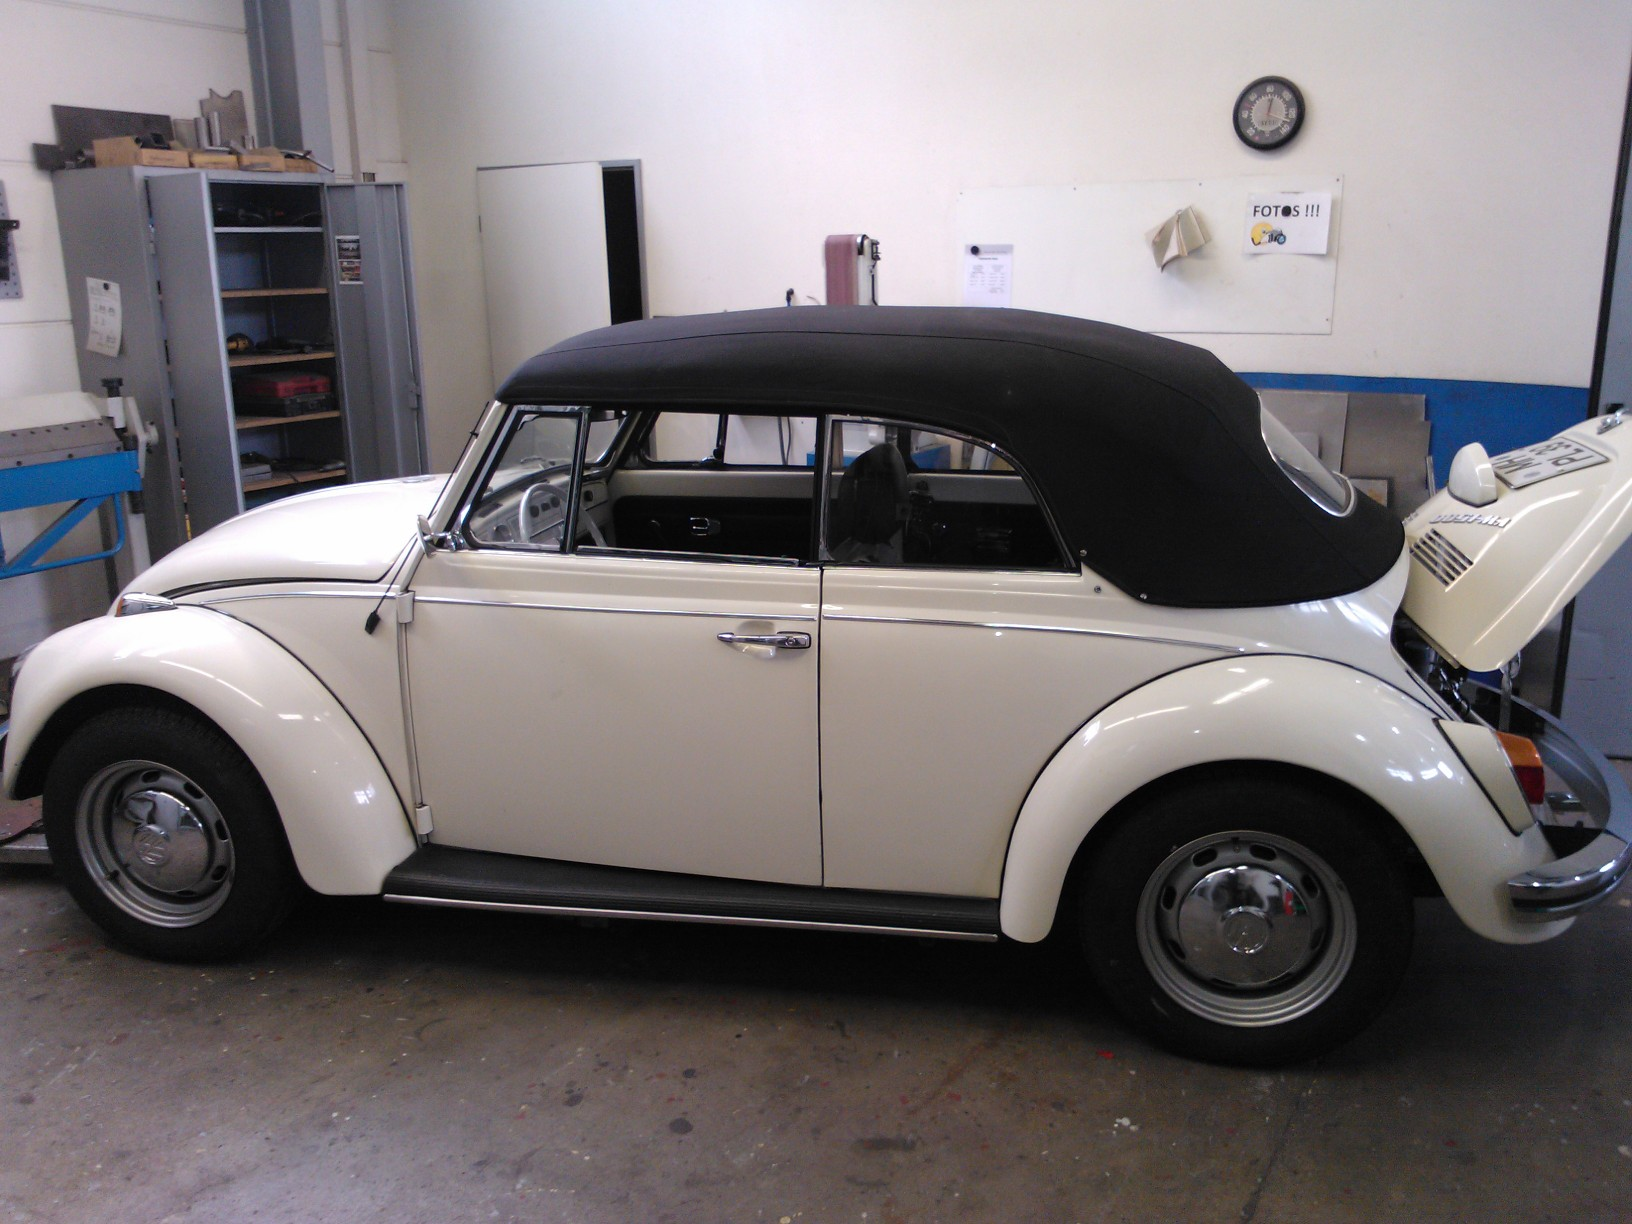 Neues Restaurationsprojekt: 1500er Käfer Cabrio